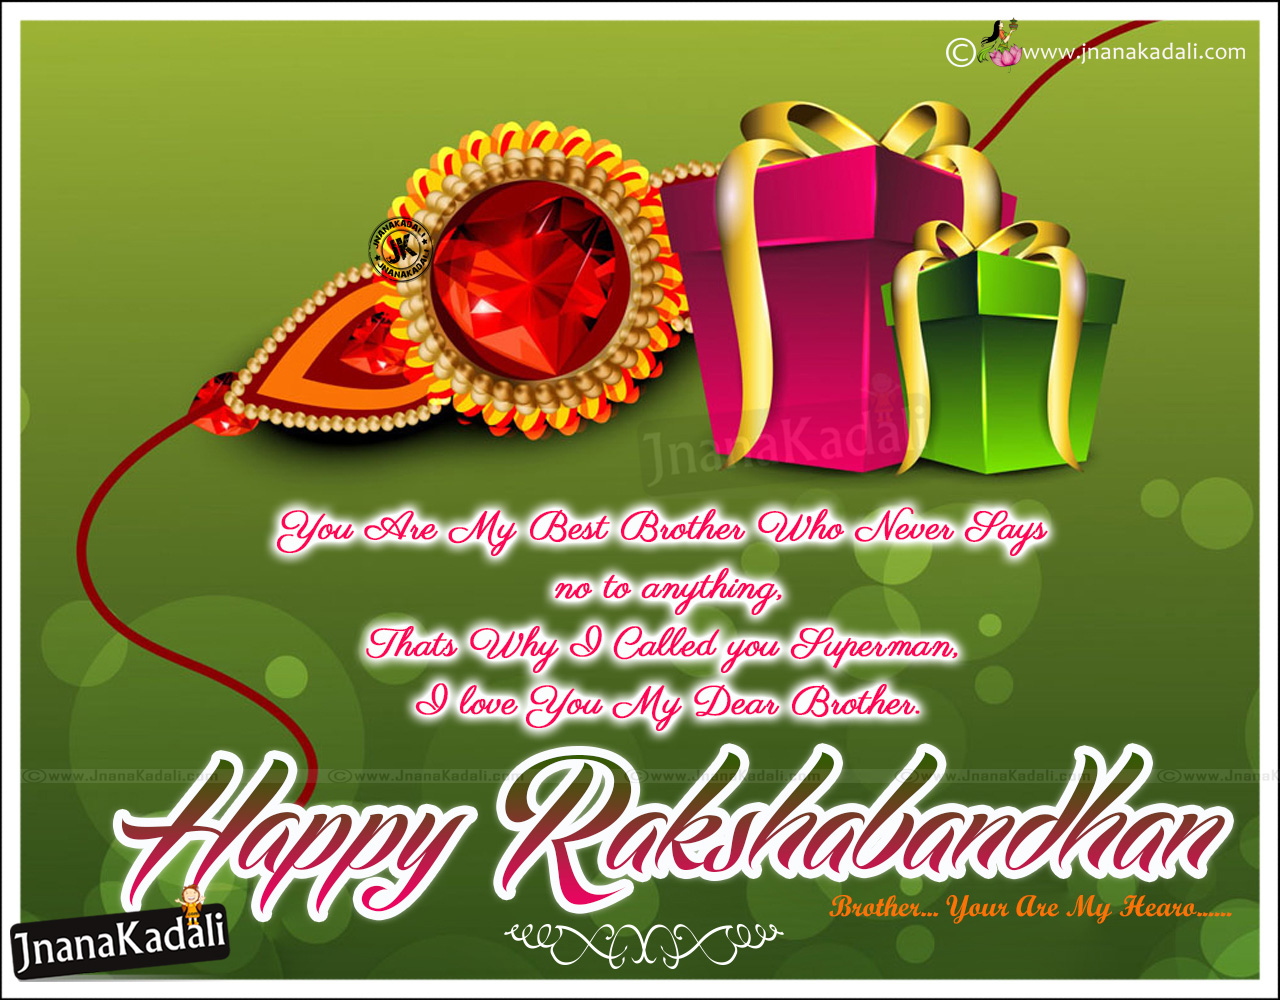 Greetings for brother choice image greeting card examples happy rakshabandhan brother quotations greetings in english with here is a nice raksha bandhan greetings for kristyandbryce Image collections